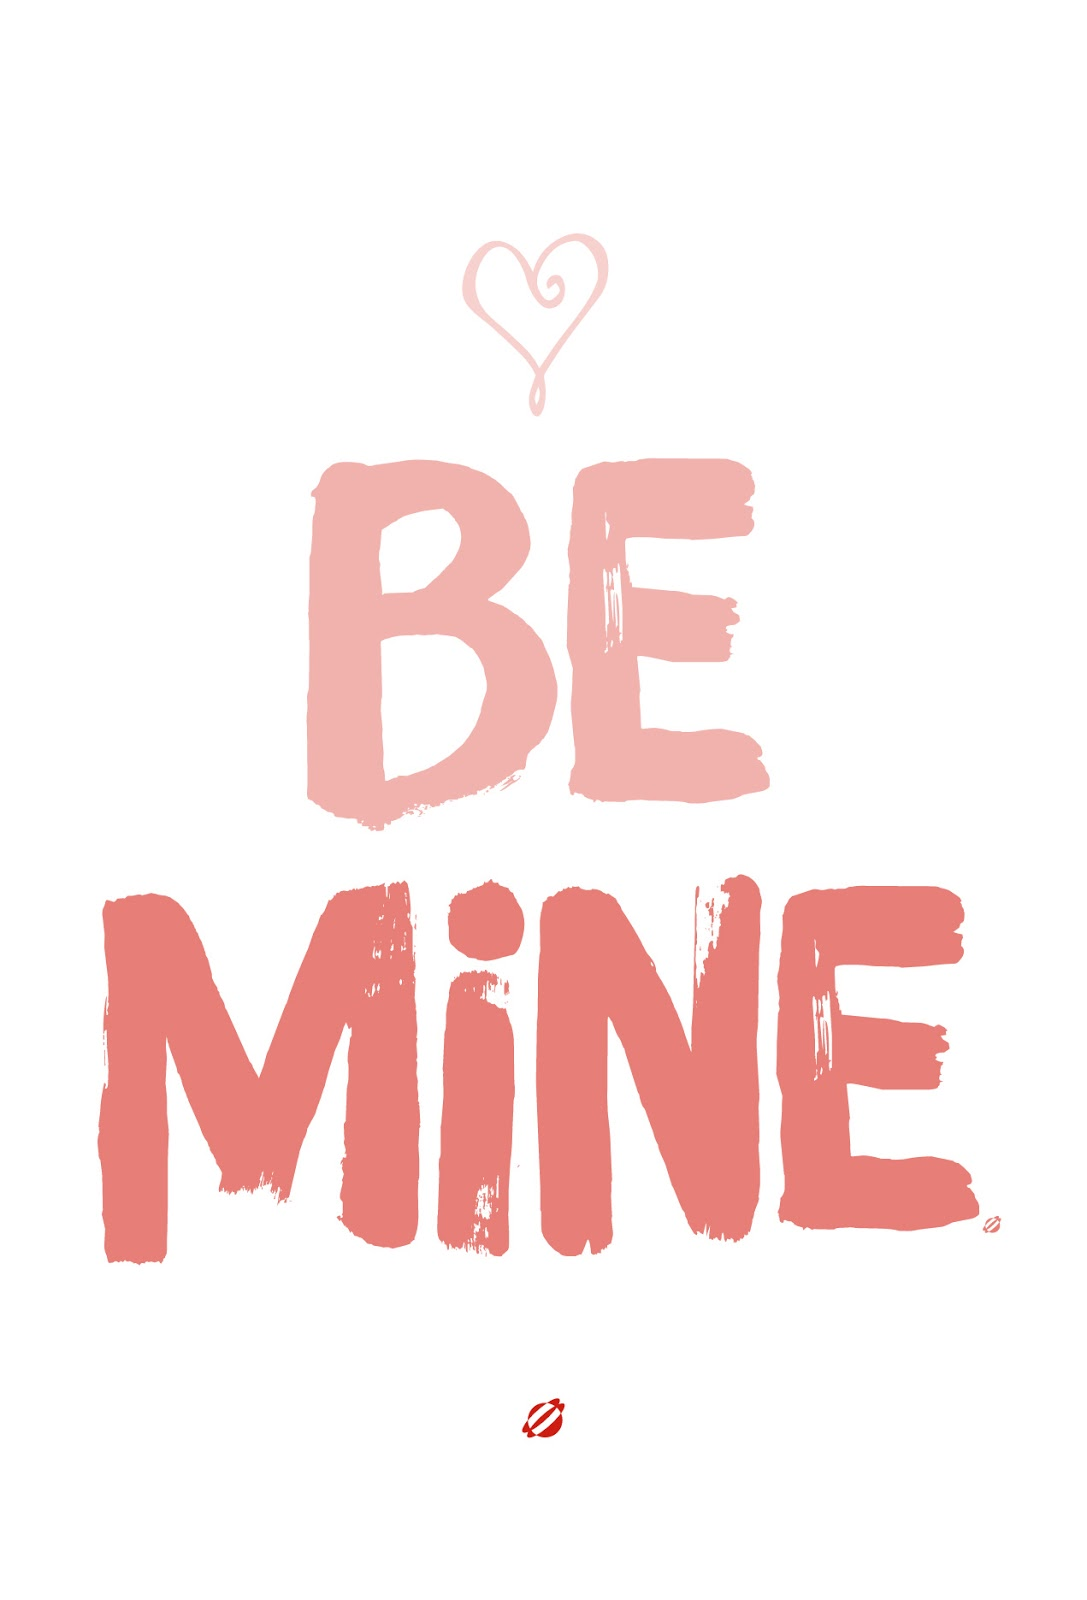 LostBumblebee ©2015 Keep It Simple- Be Mine | Free Printable | Personal Use Only.